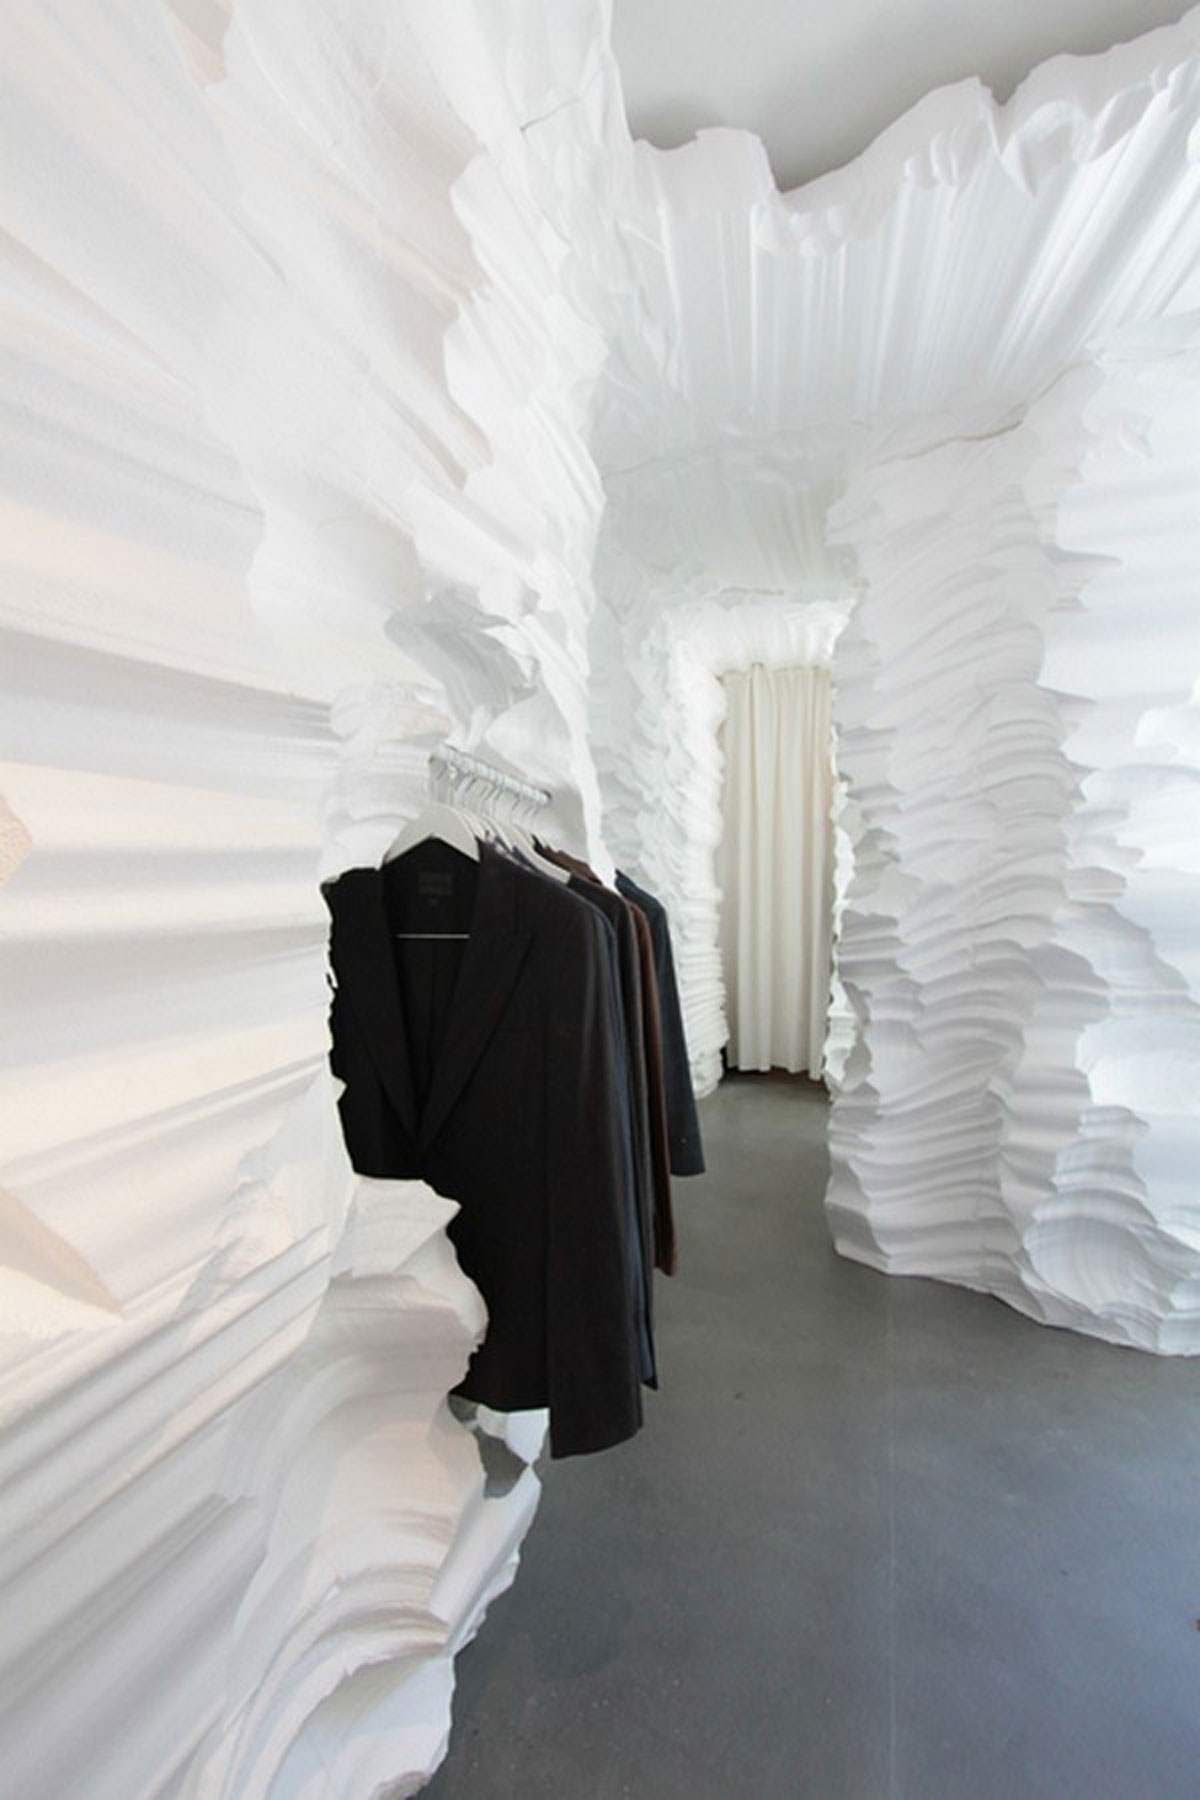 Modern Glacial Cavern Fashion Shop Designs by Snarkitecture - Iroonie.